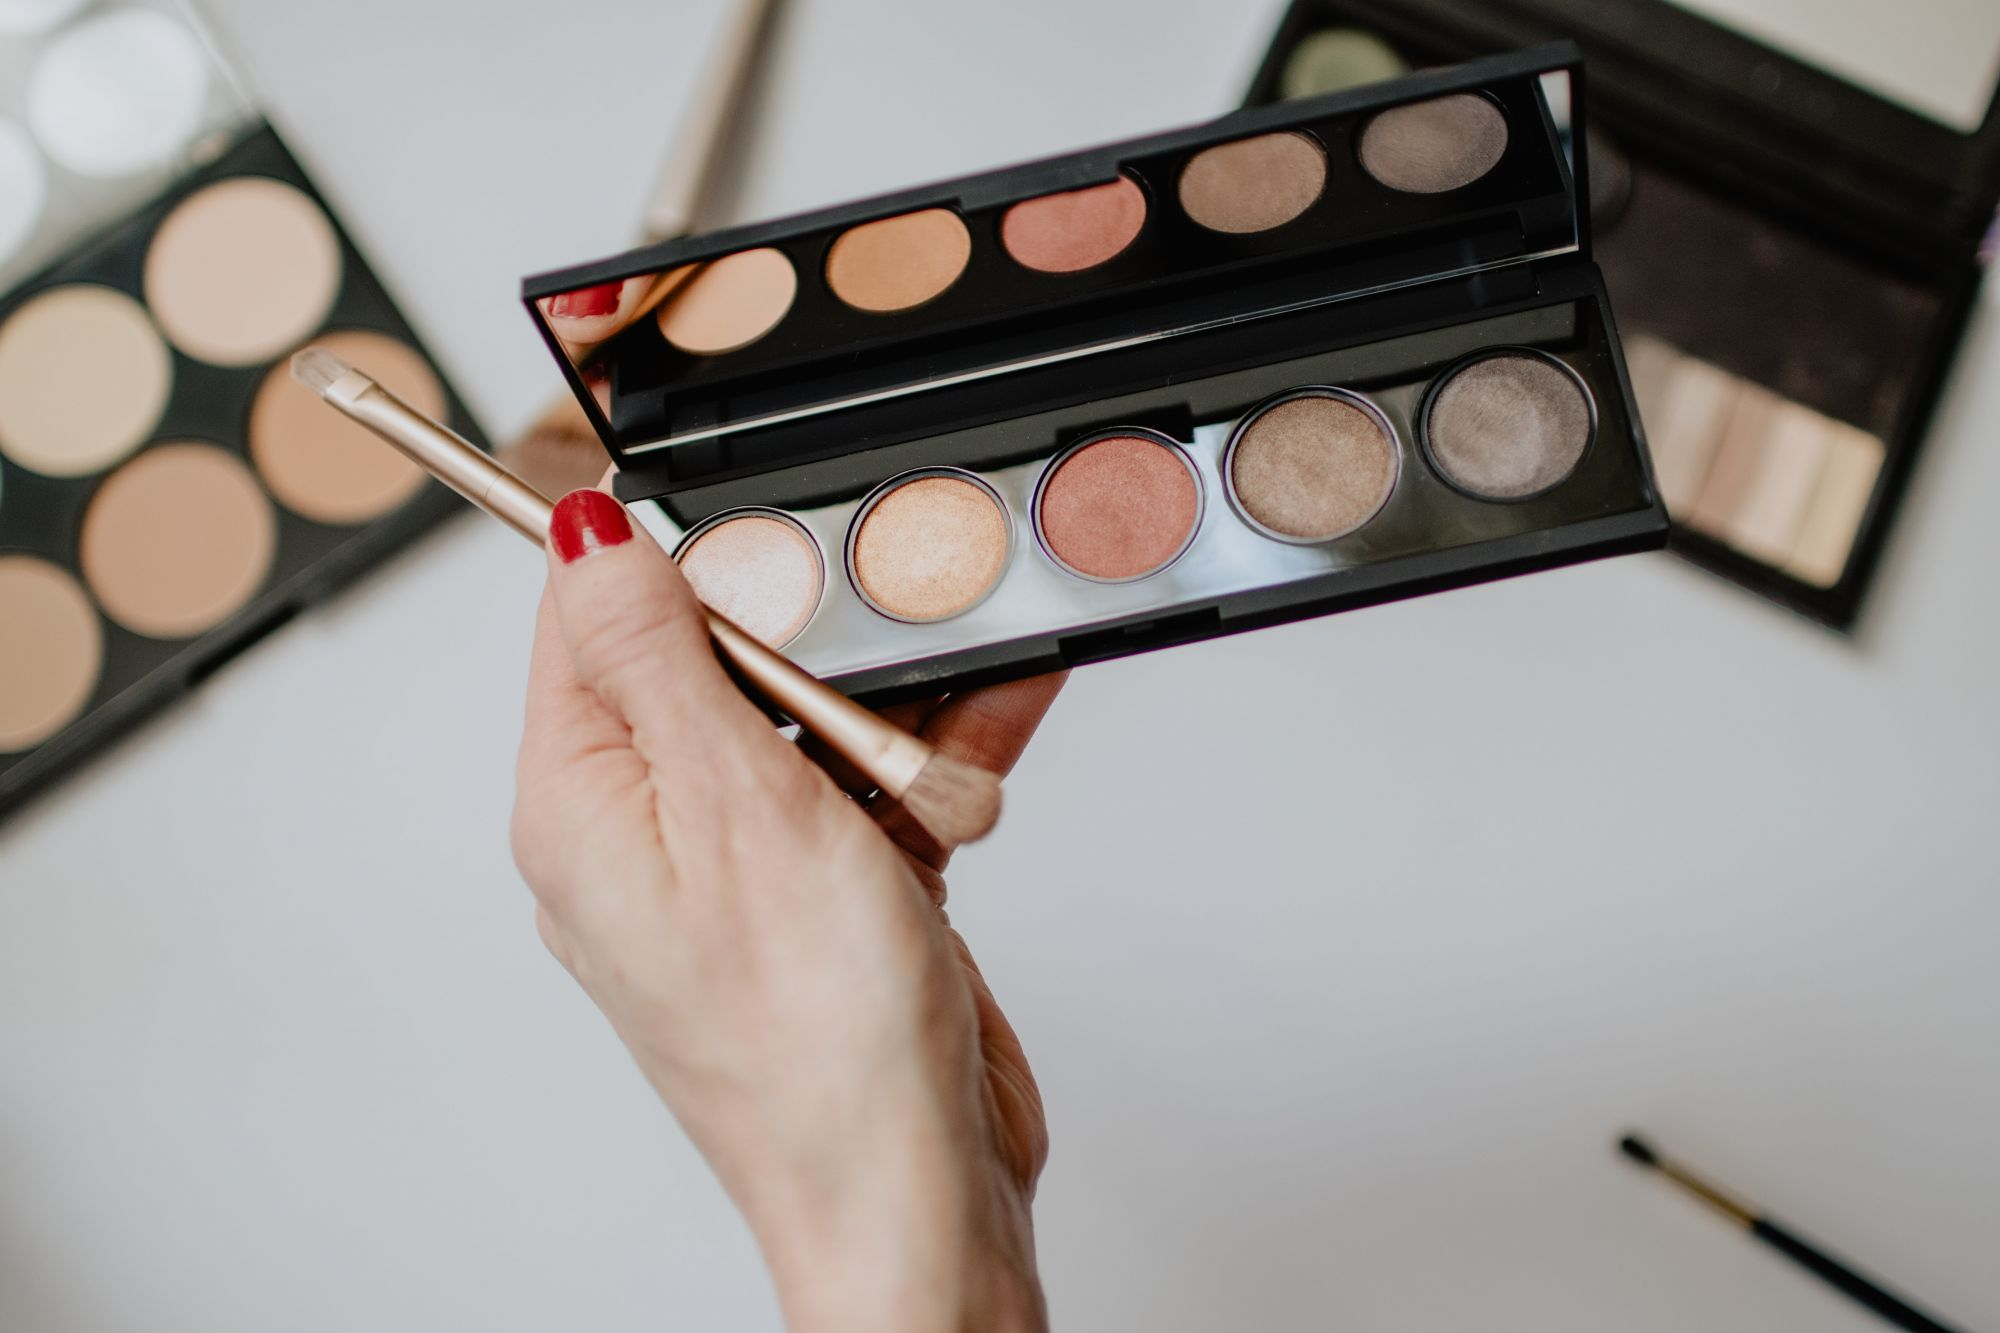 Face Mask Make-Up: 5 Eyeshadow Tutorials Featuring Cult Favourite Palettes